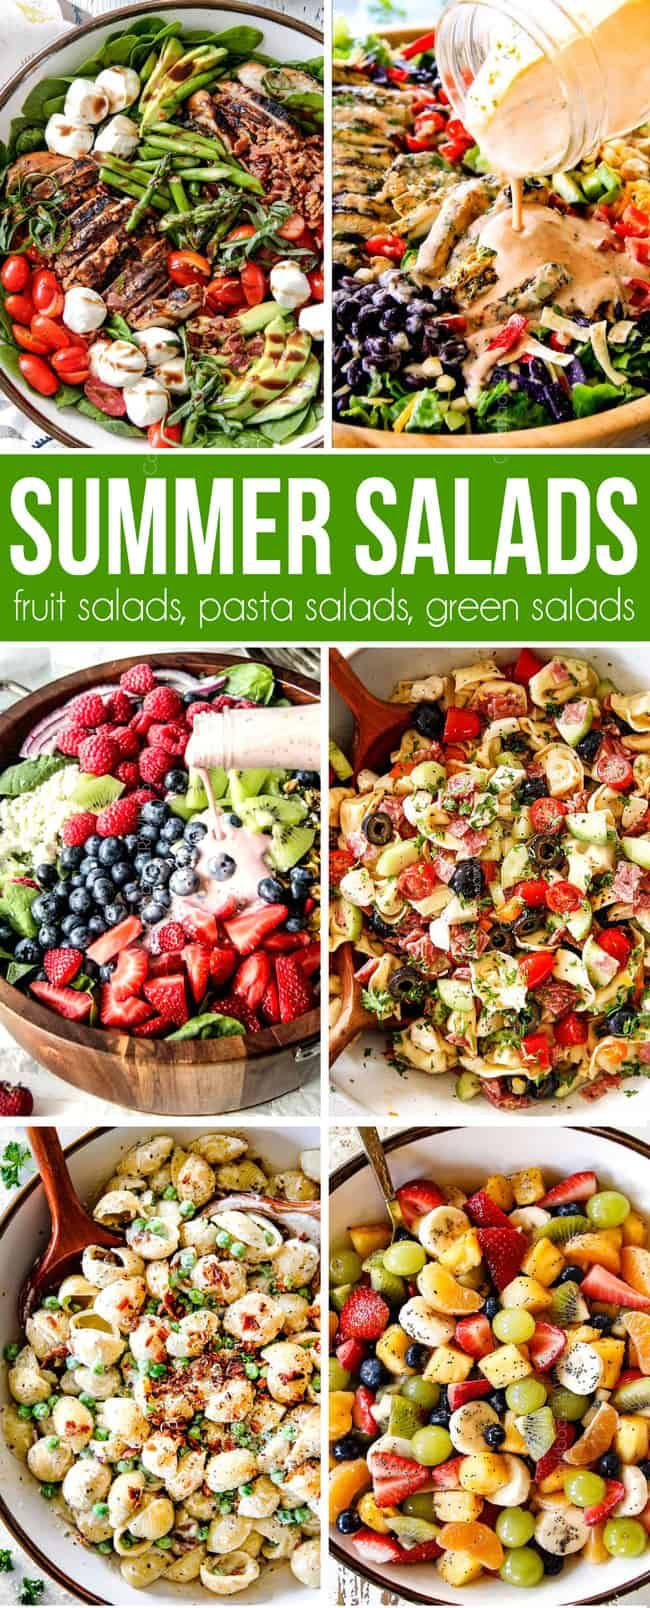 The best summer salad recipes from fruit salads to green salads to pasta salads to chicken salads all in one place! #salad #saladrecipes #saladdressing #saladideas #chickenfoodrecipes #summerrecipes #fruitsalad #pasta #pastasalad #pastarecipes #potluck #sidedishrecipes #4thofjuly  via @carlsbadcraving